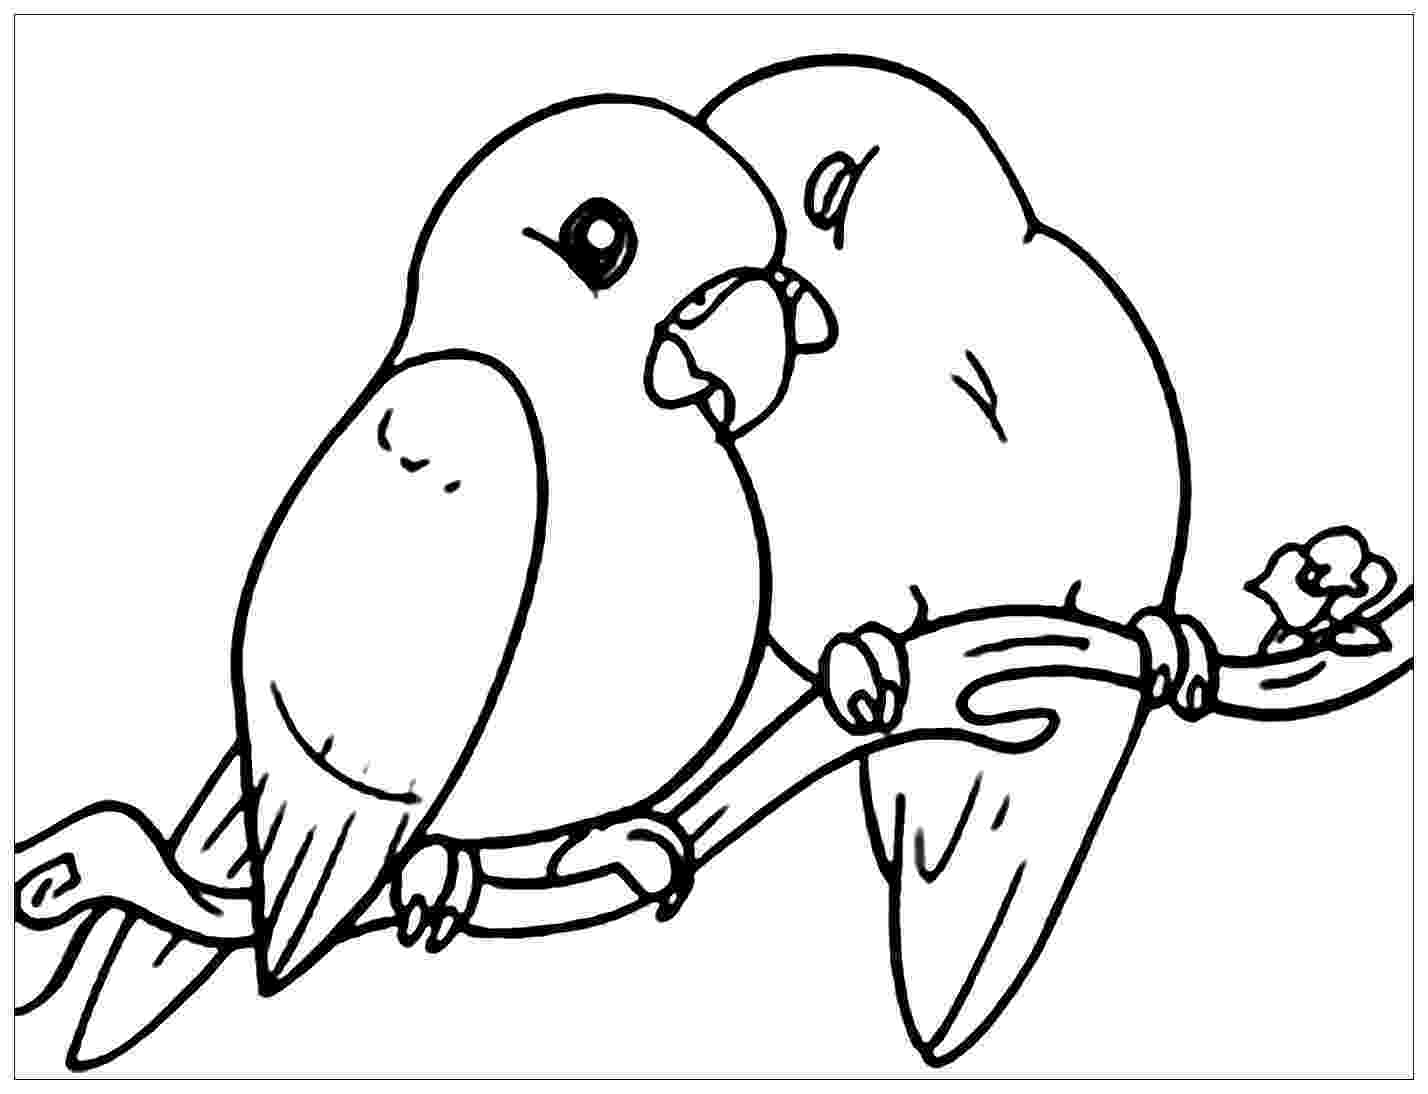 colouring picture bird birds to download birds kids coloring pages colouring bird picture